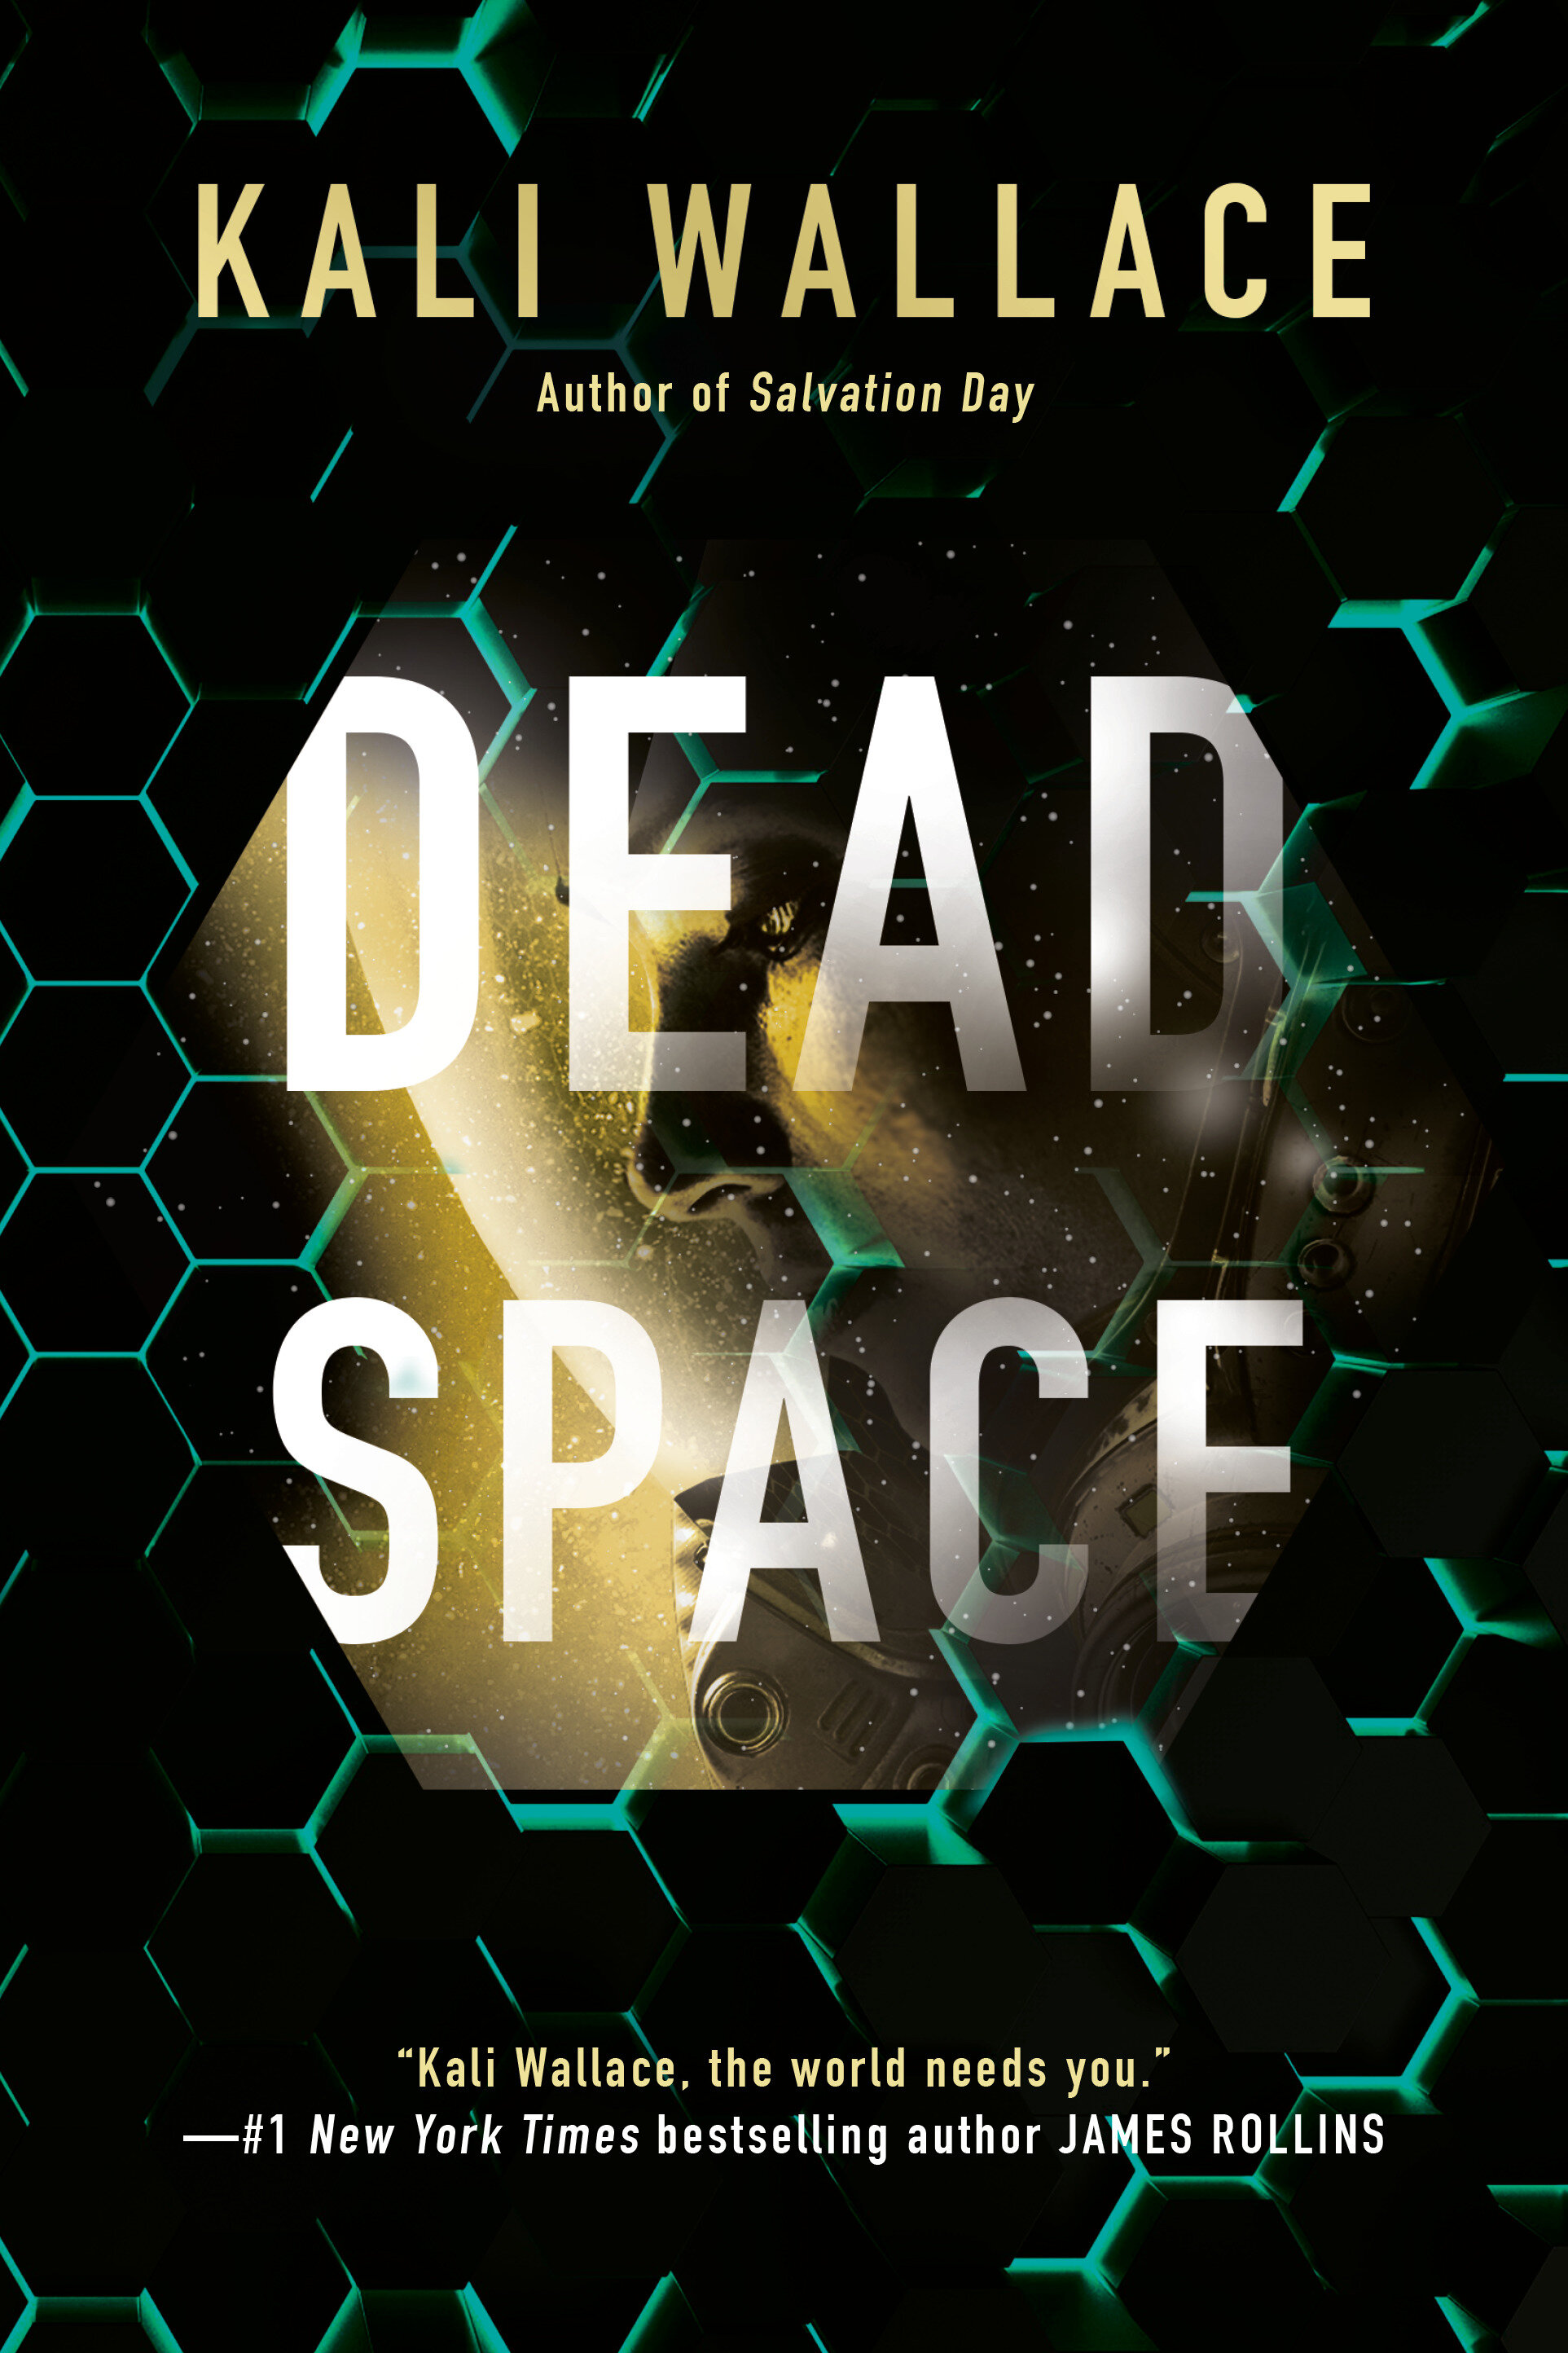 cover: a calm green geometric pattern over a black background, simulating the dark of space. in the middle: the face of a woman, clearly in a spacesuit.